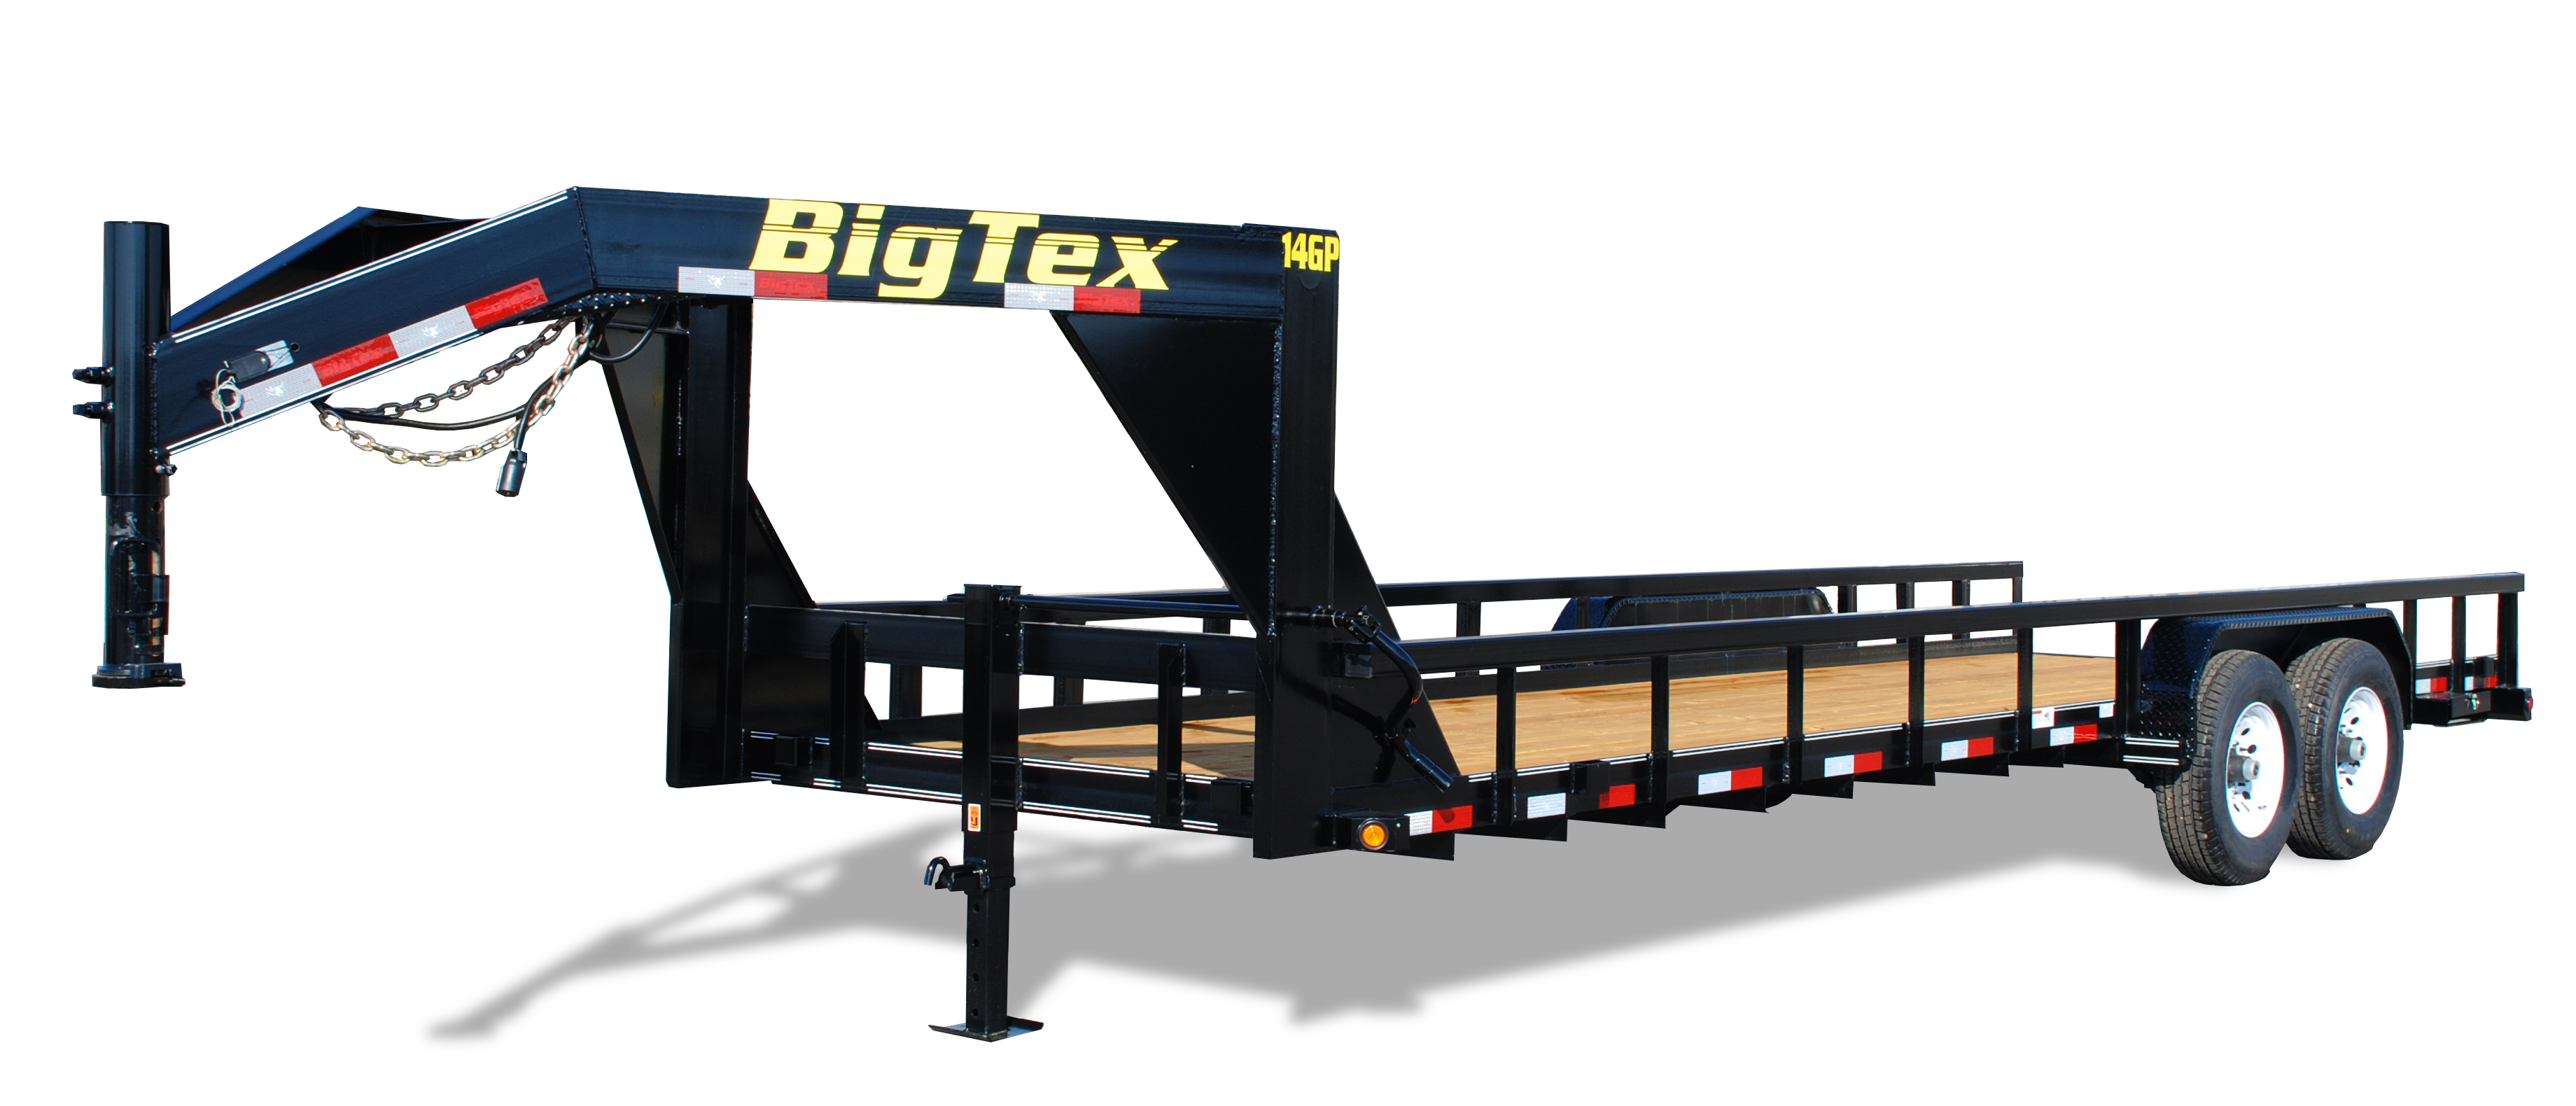 Big Tex 14GP Trailer